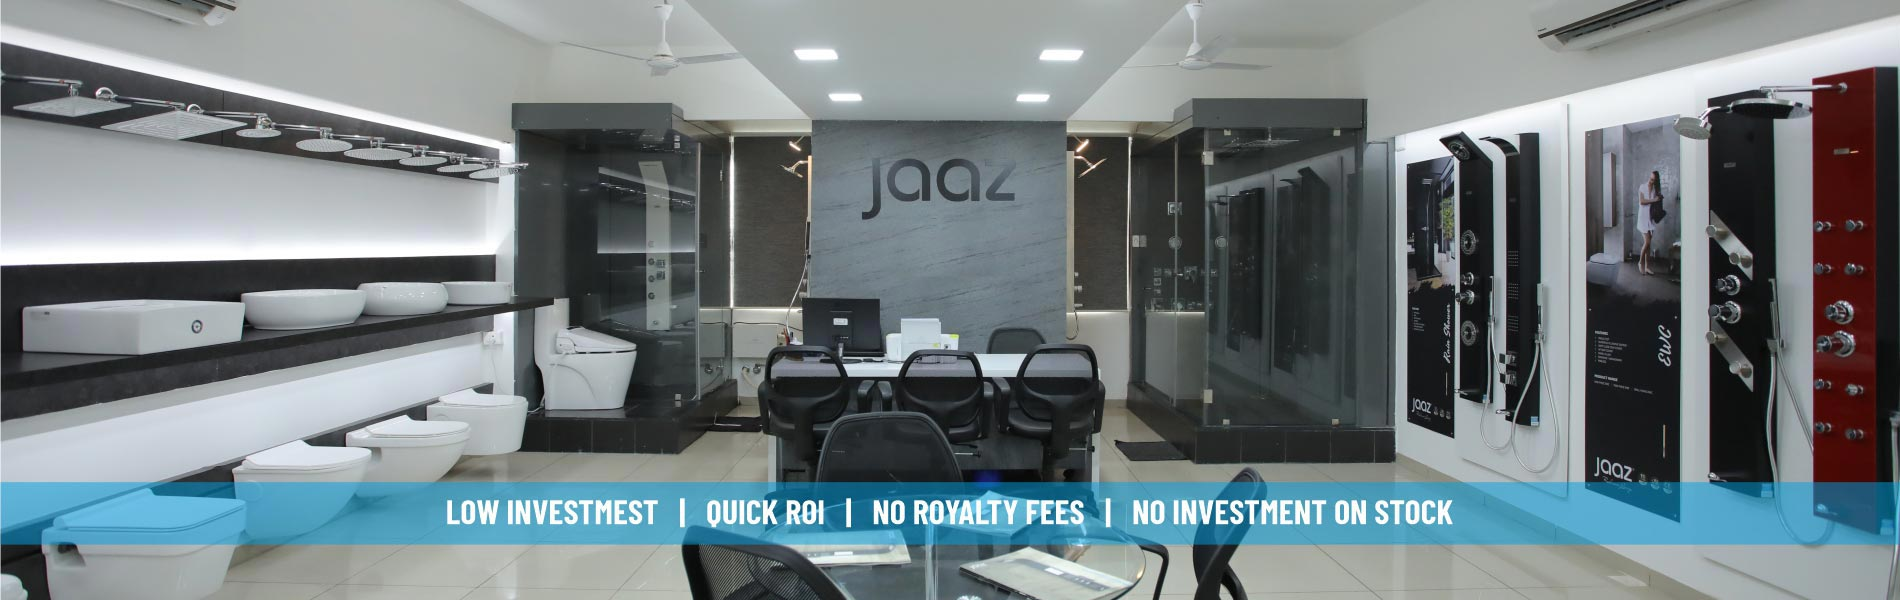 Jaaz Corporation Private Limited